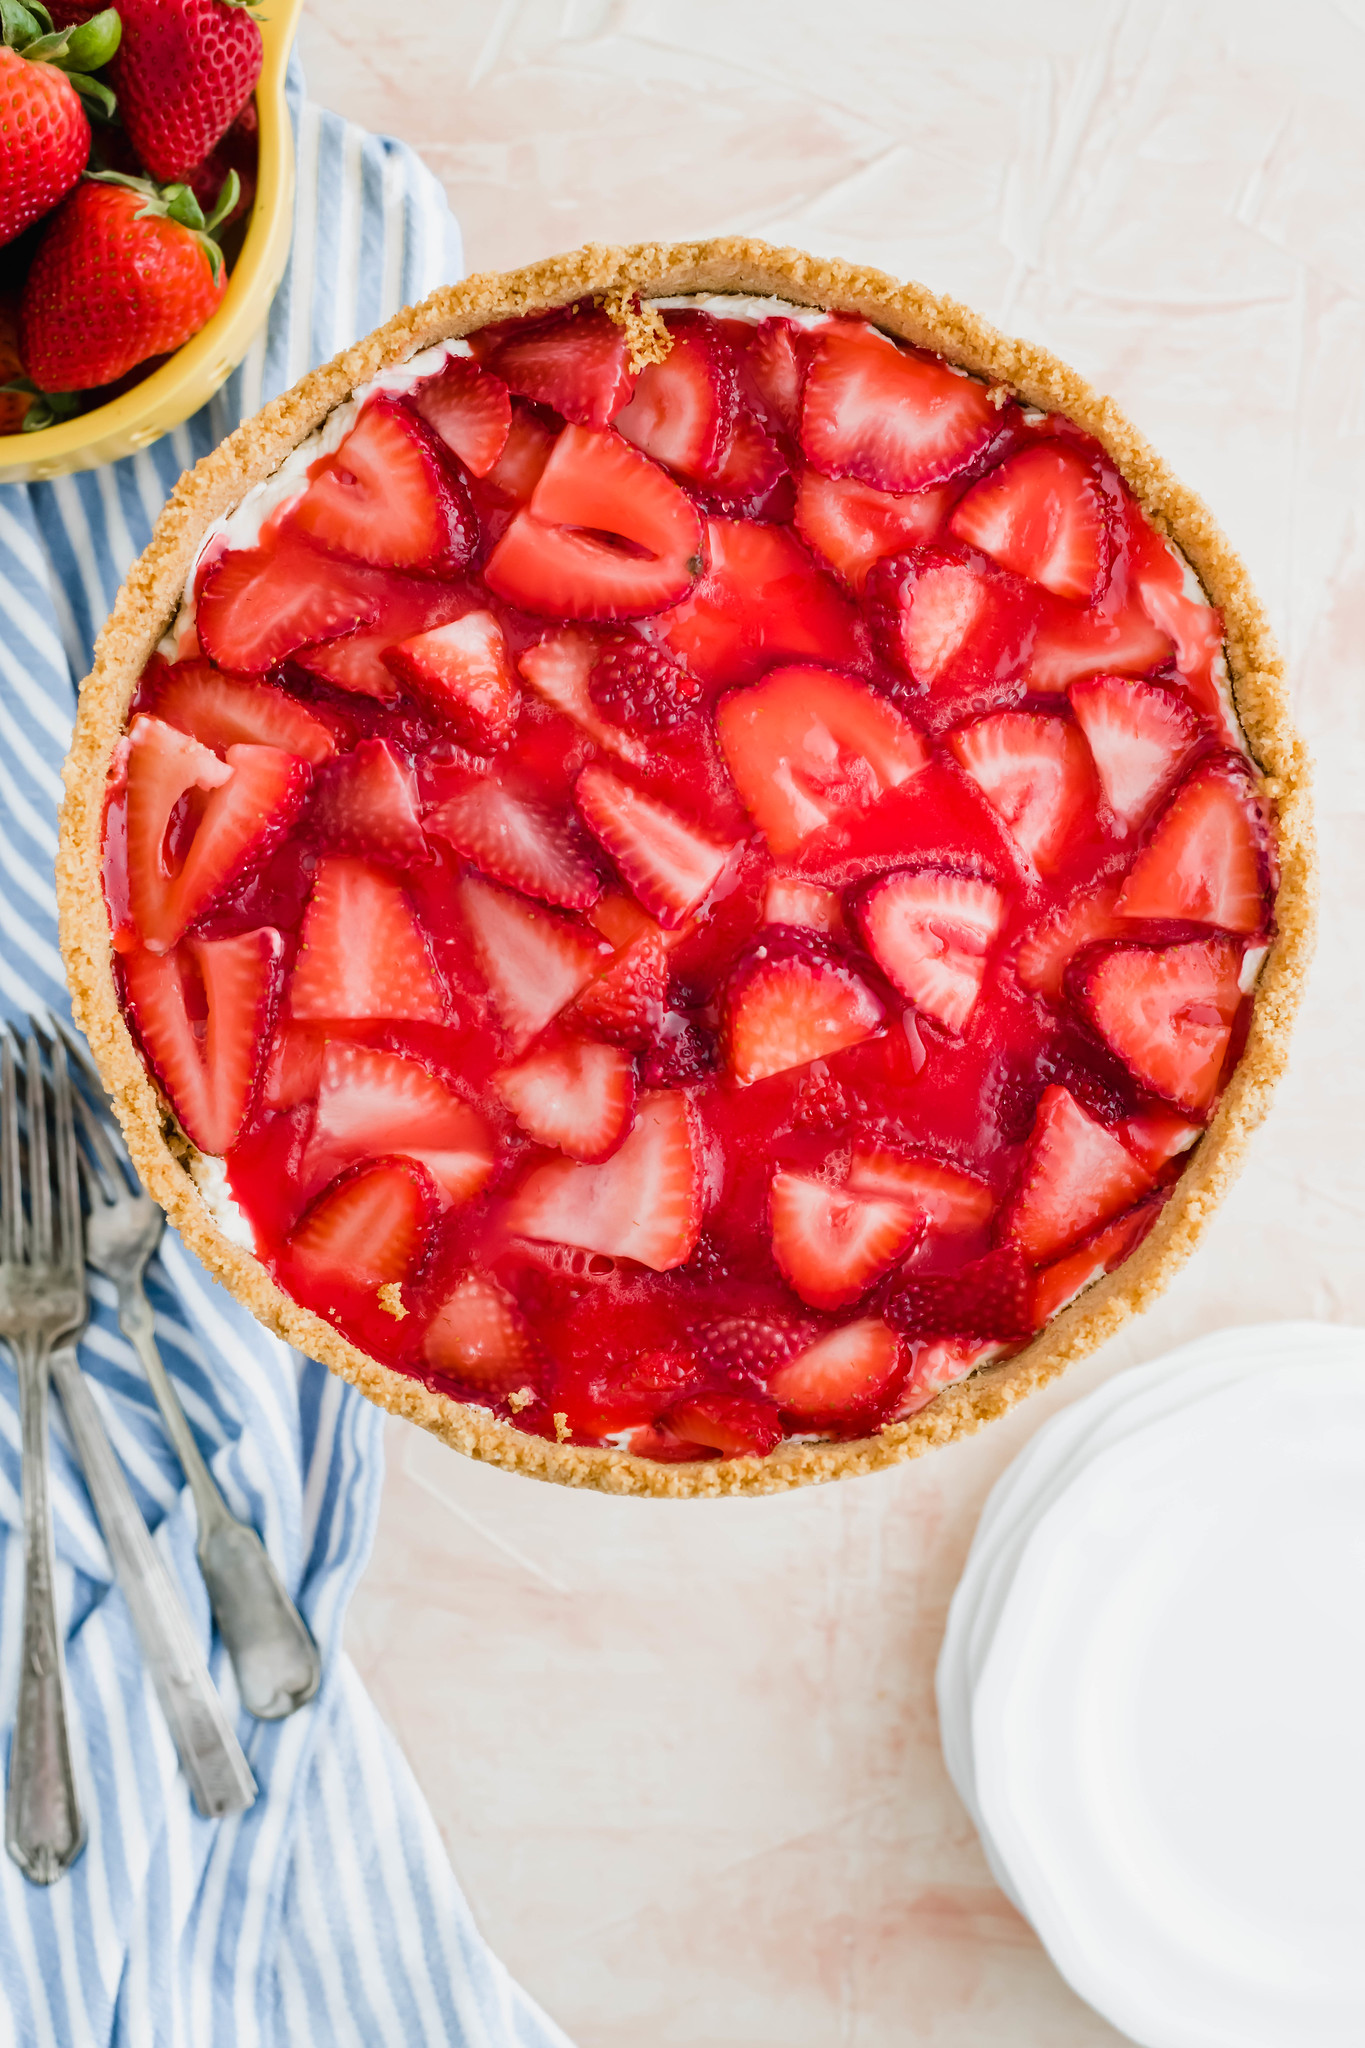 I combined two favorite summer desserts, cheesecake and strawberry pie, to make the most delicious treat, Strawberry Cream Cheese Pie. A fluffy, no-bake cheesecake filling topped with classic strawberry pie filling will have you addicted in no time.